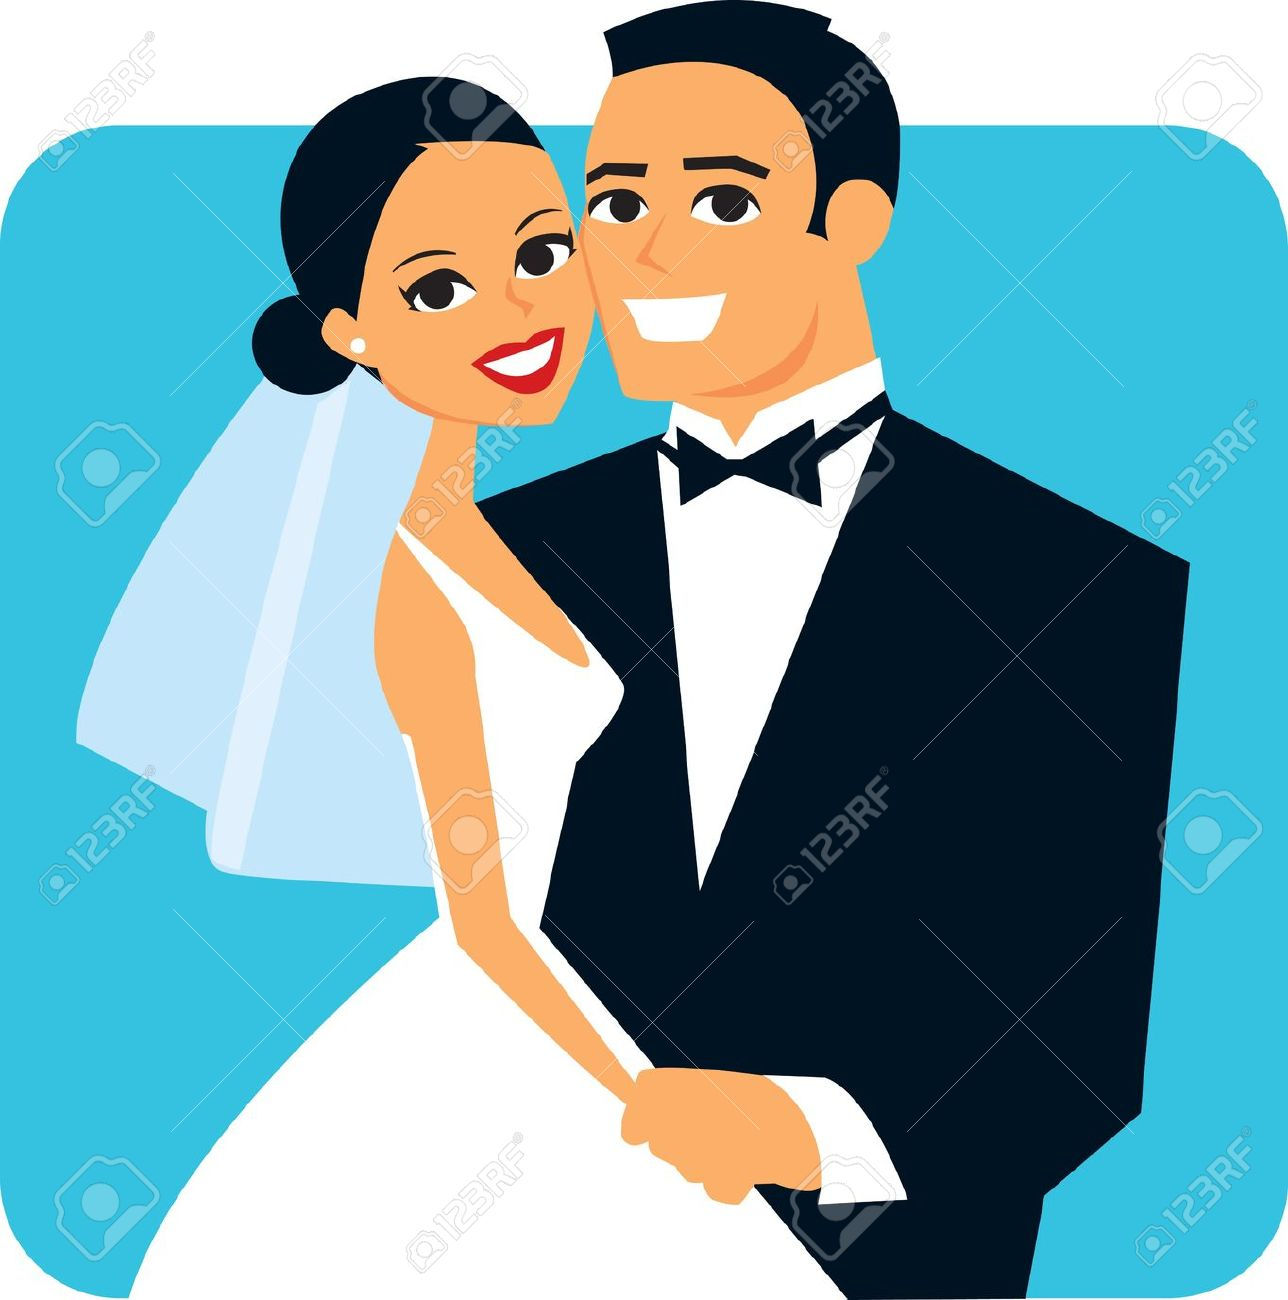 Getting Married Clipart.